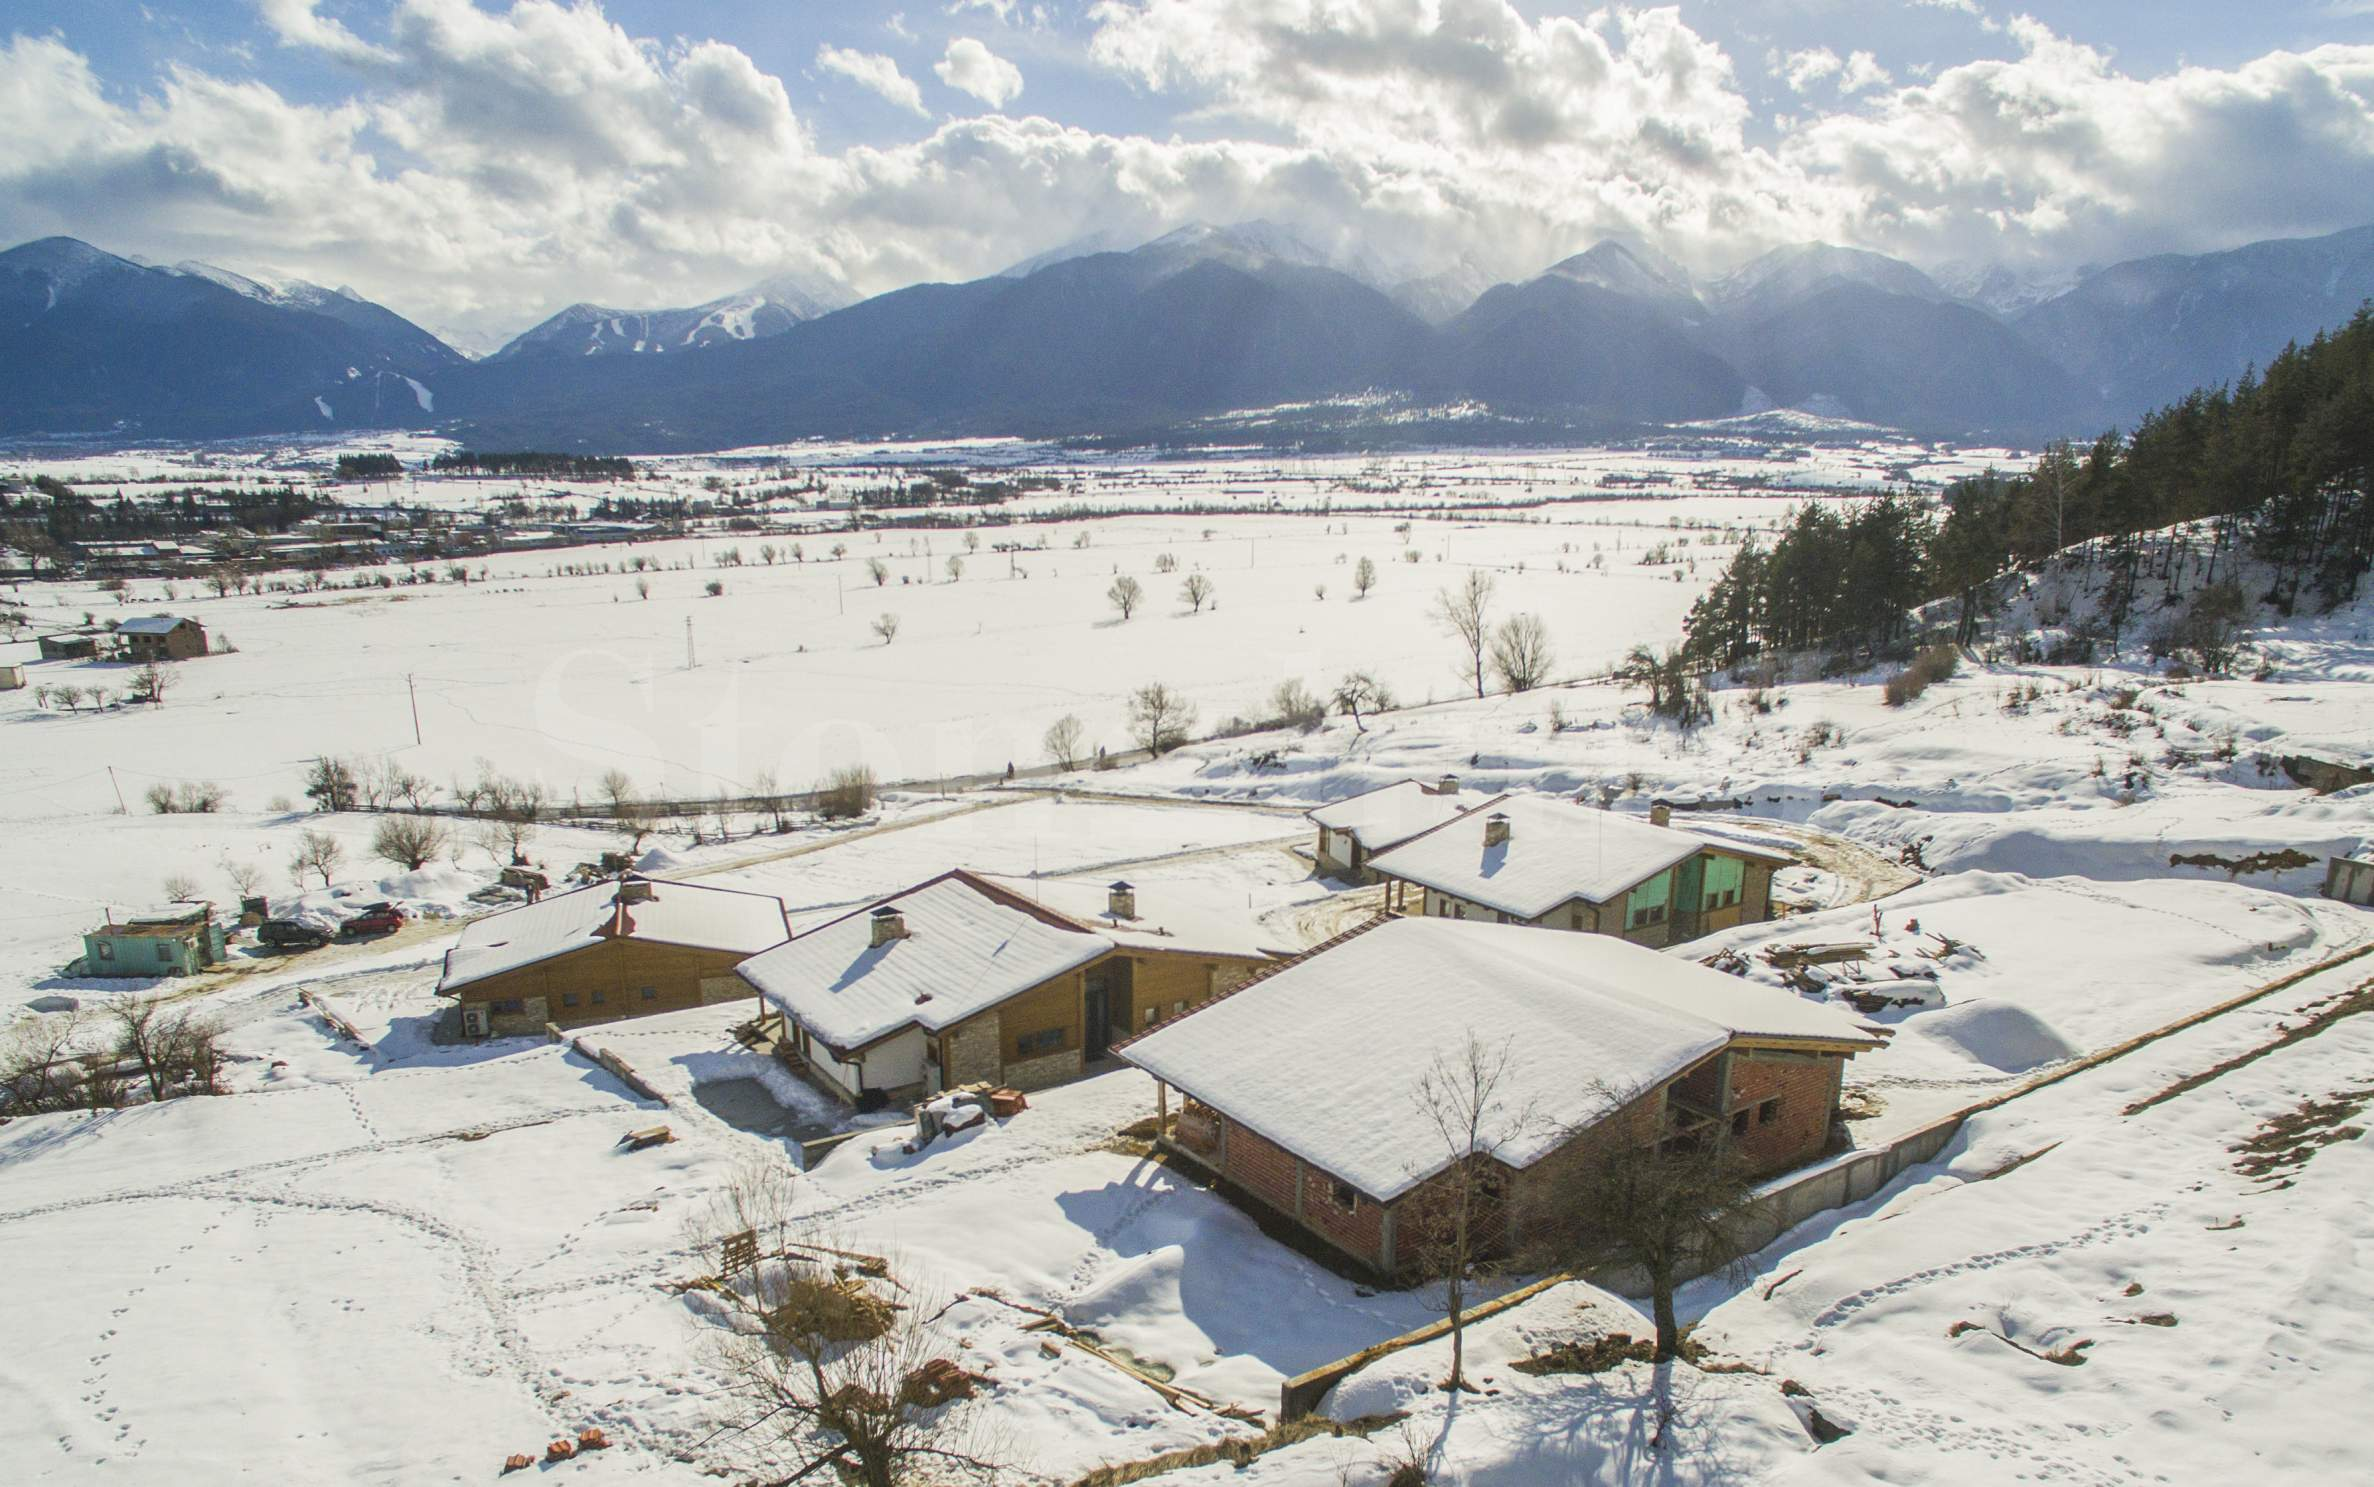 Daily Sabah: Bansko is Bulgaria's wonderland on Turkey's doorstep1 - Stonehard